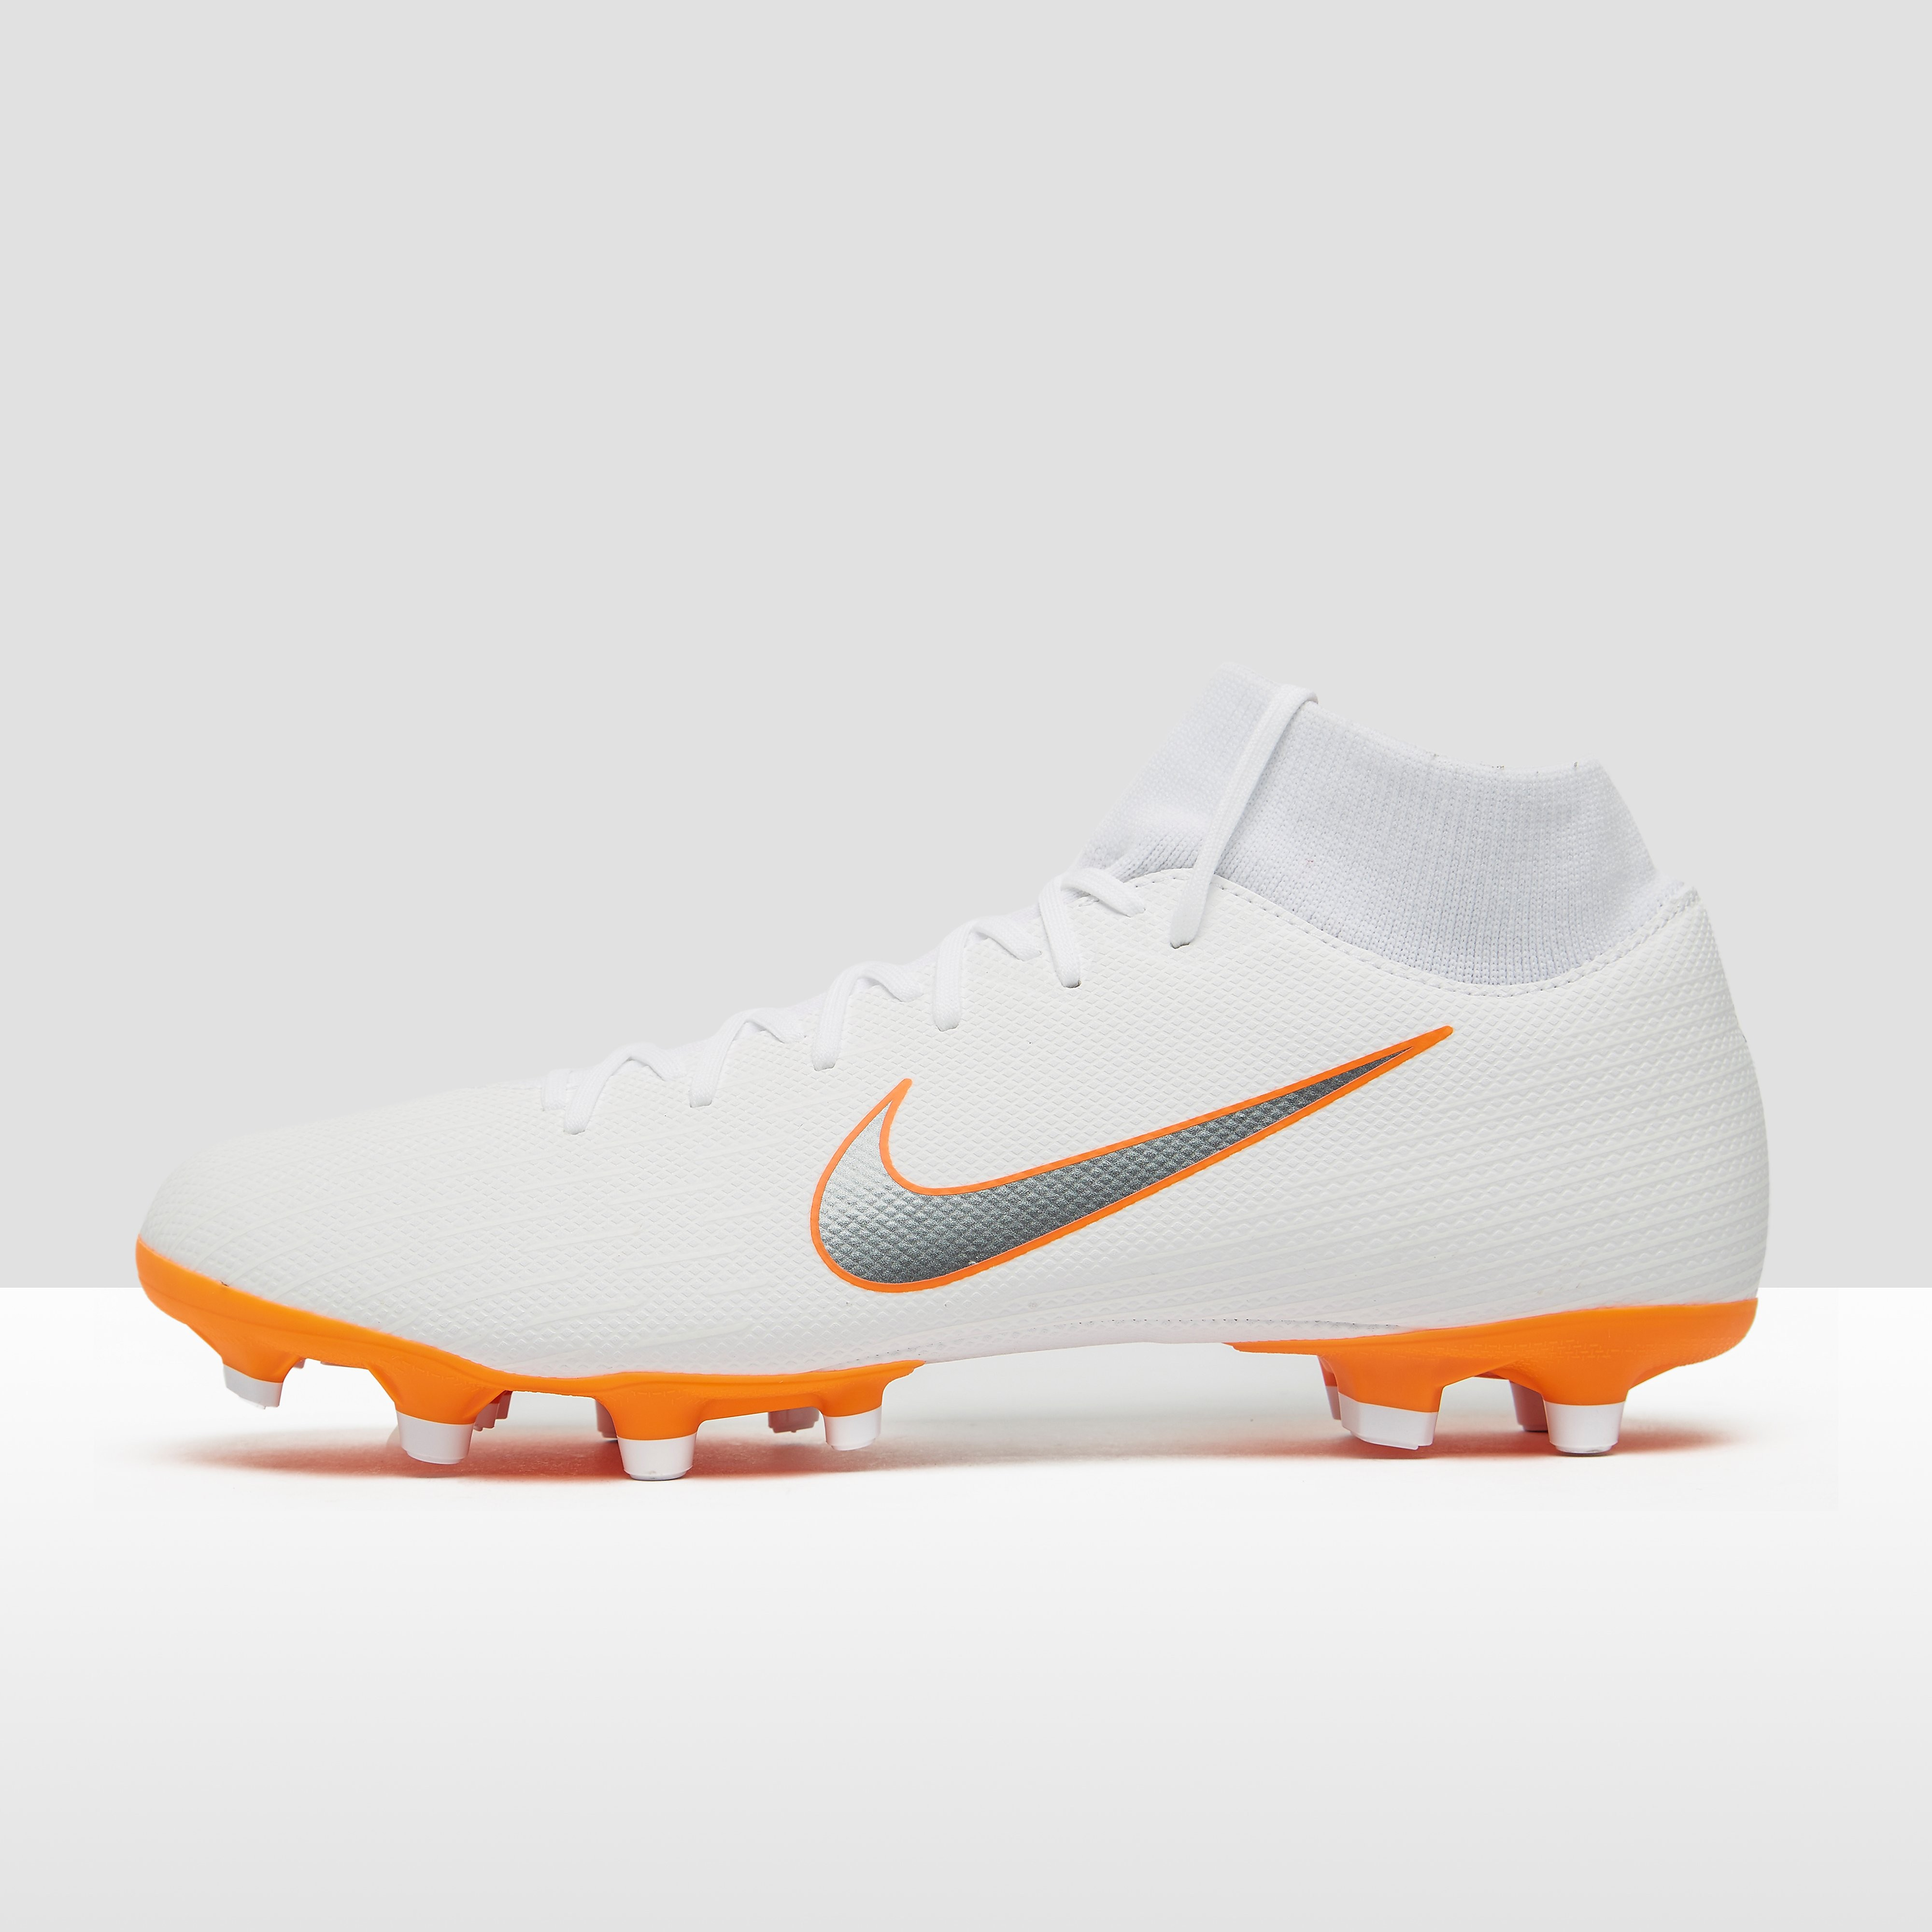 NIKE MERCURIAL SUPERFLY 6 ACADEMY FG/MG VOETBALSCHOENEN WIT/ORANJE